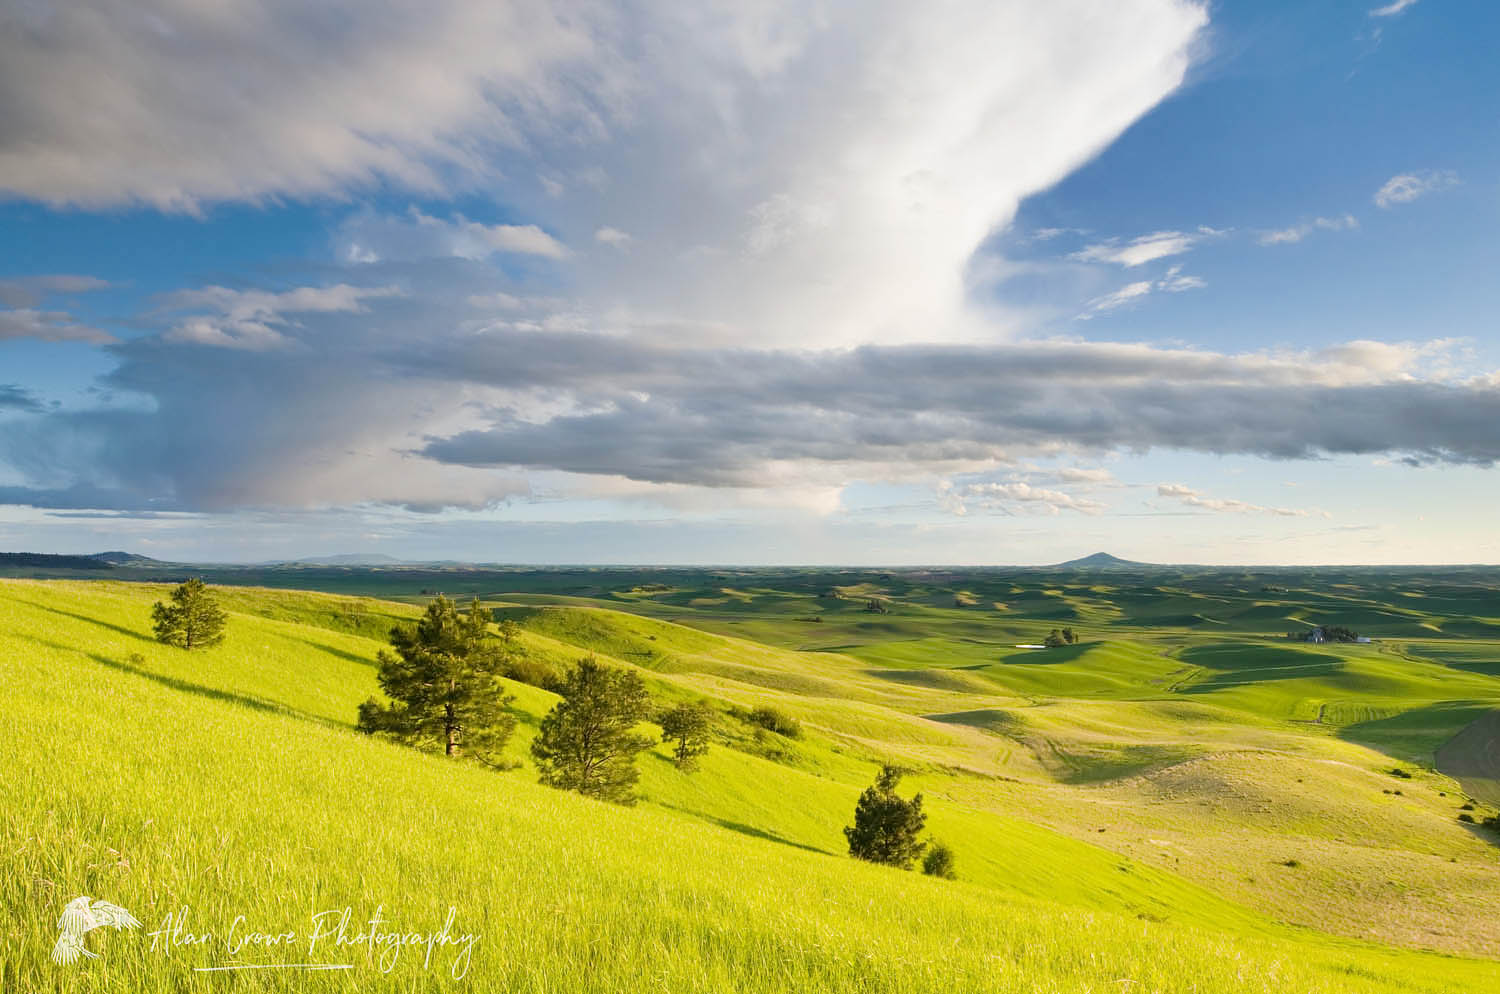 Clouds over the Palouse Washington